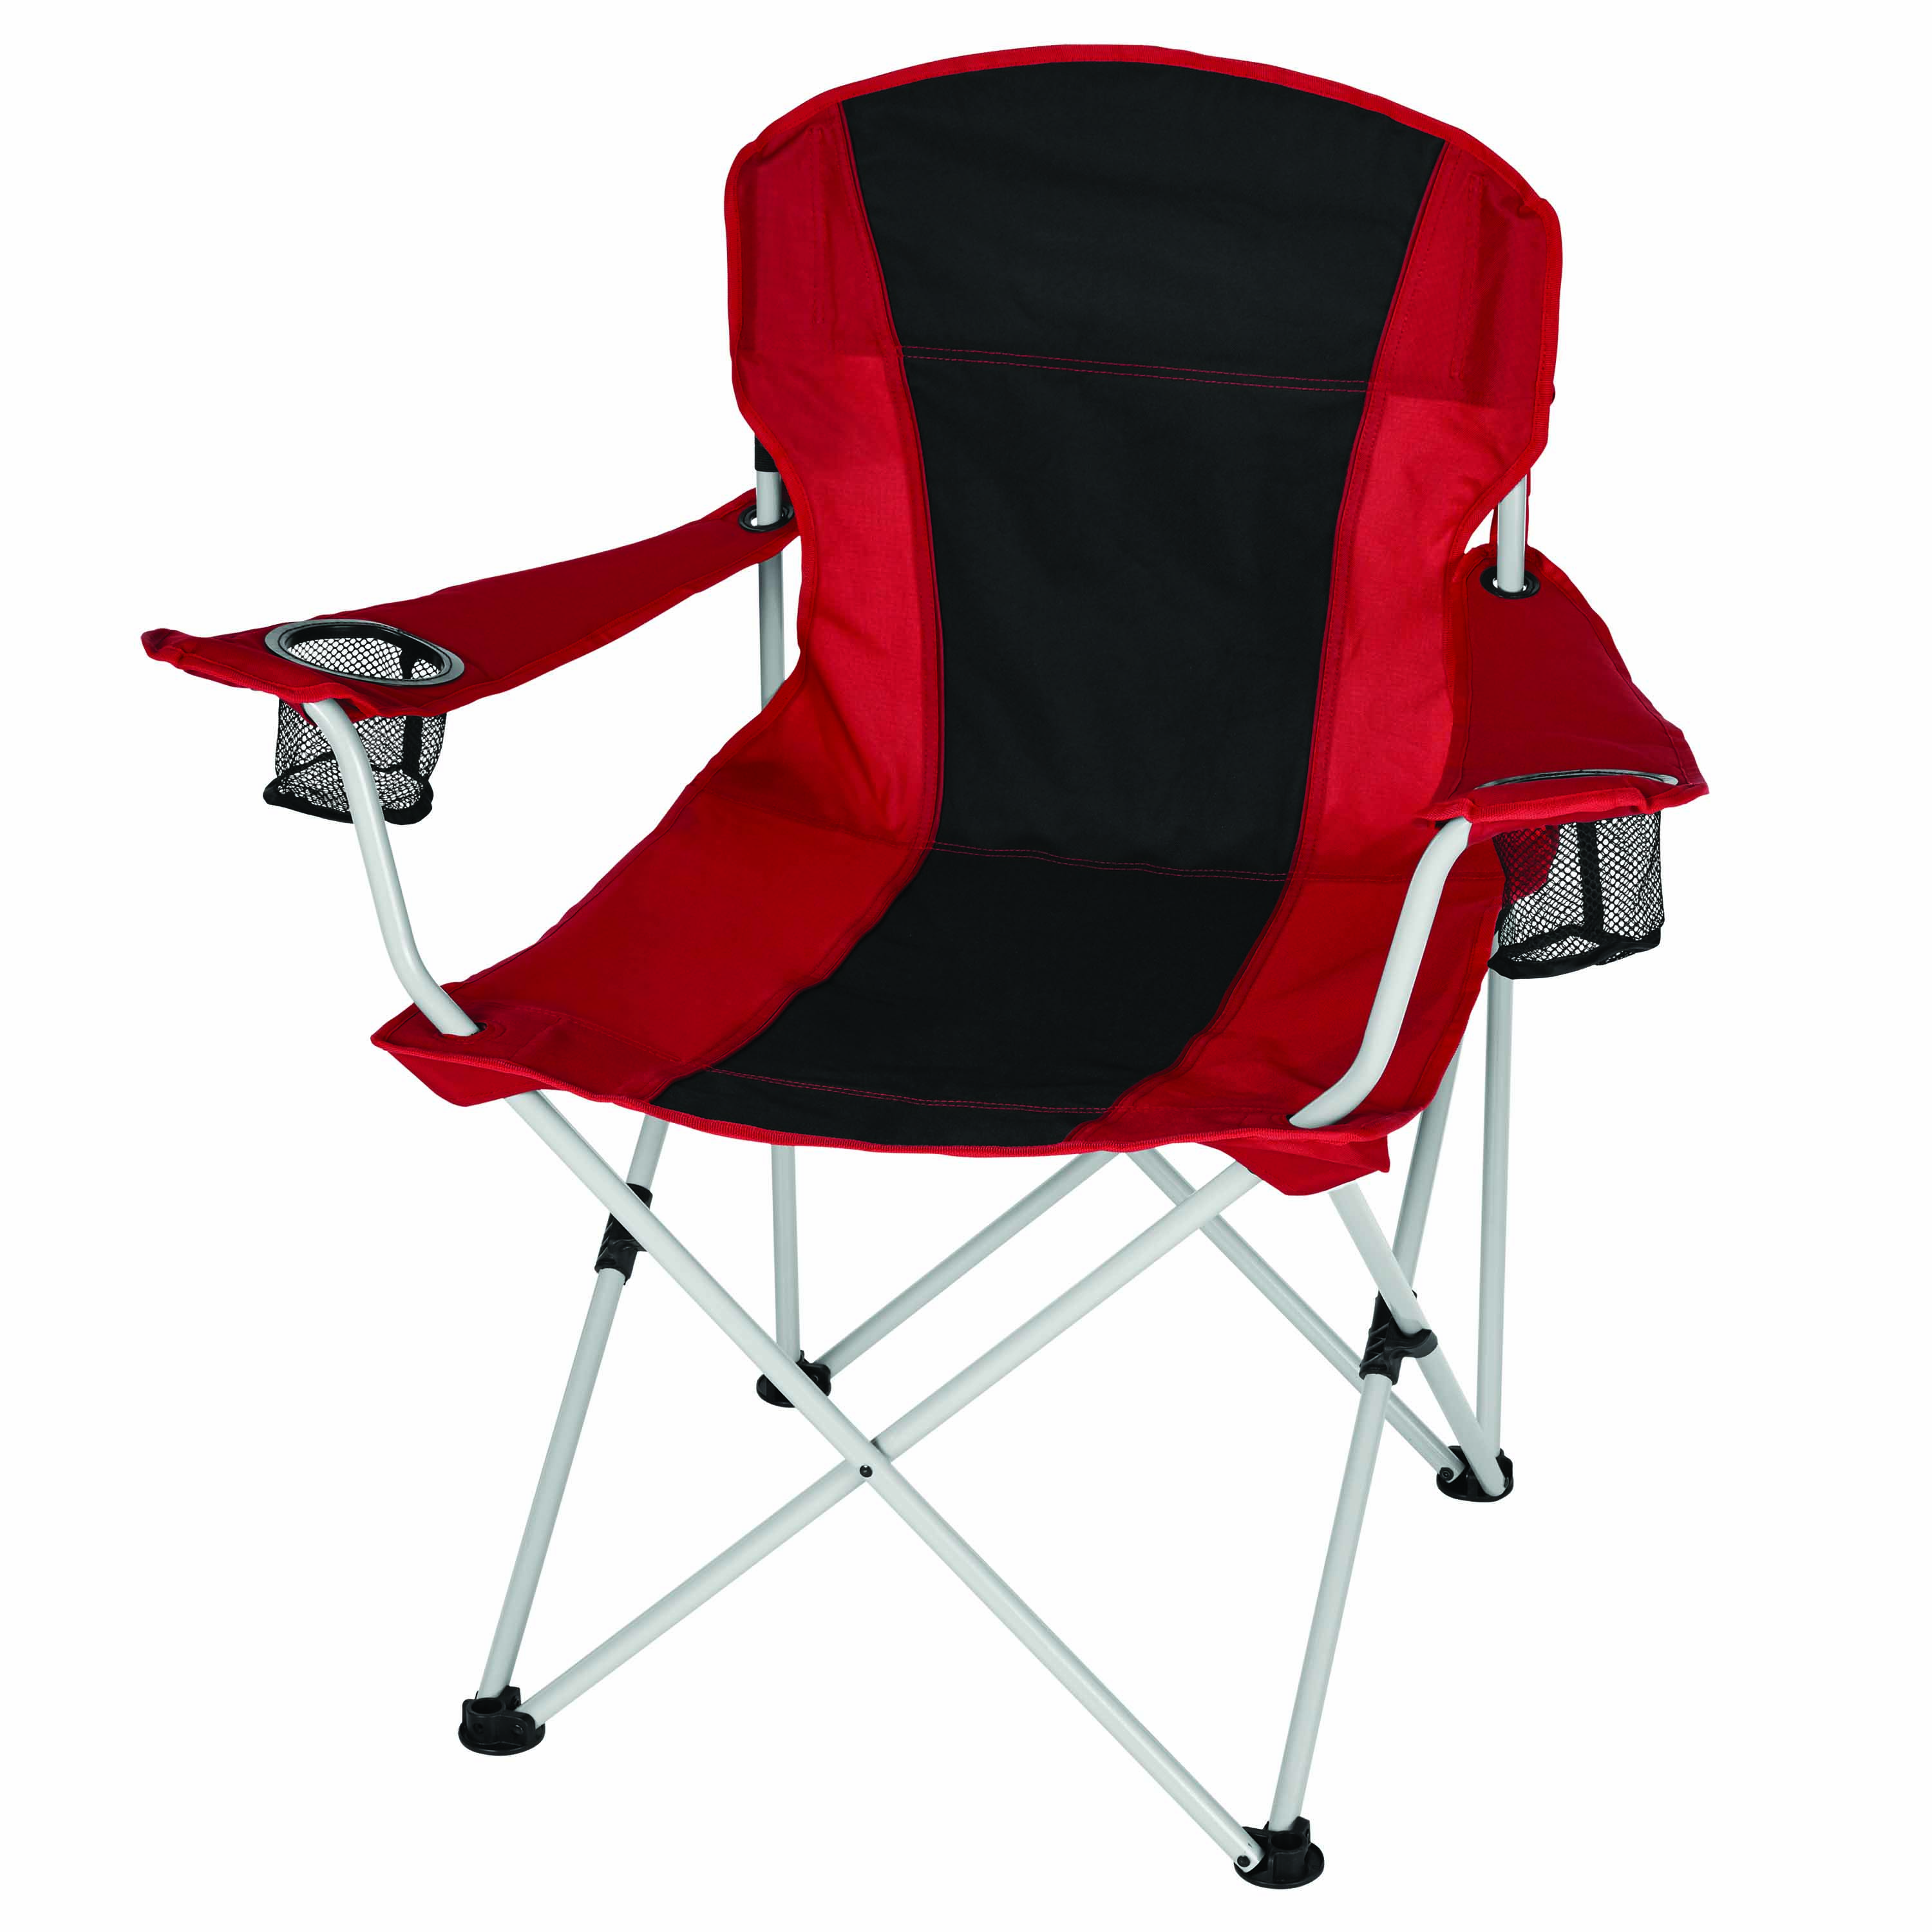 Ozark Trail Oversized Chair-red Black